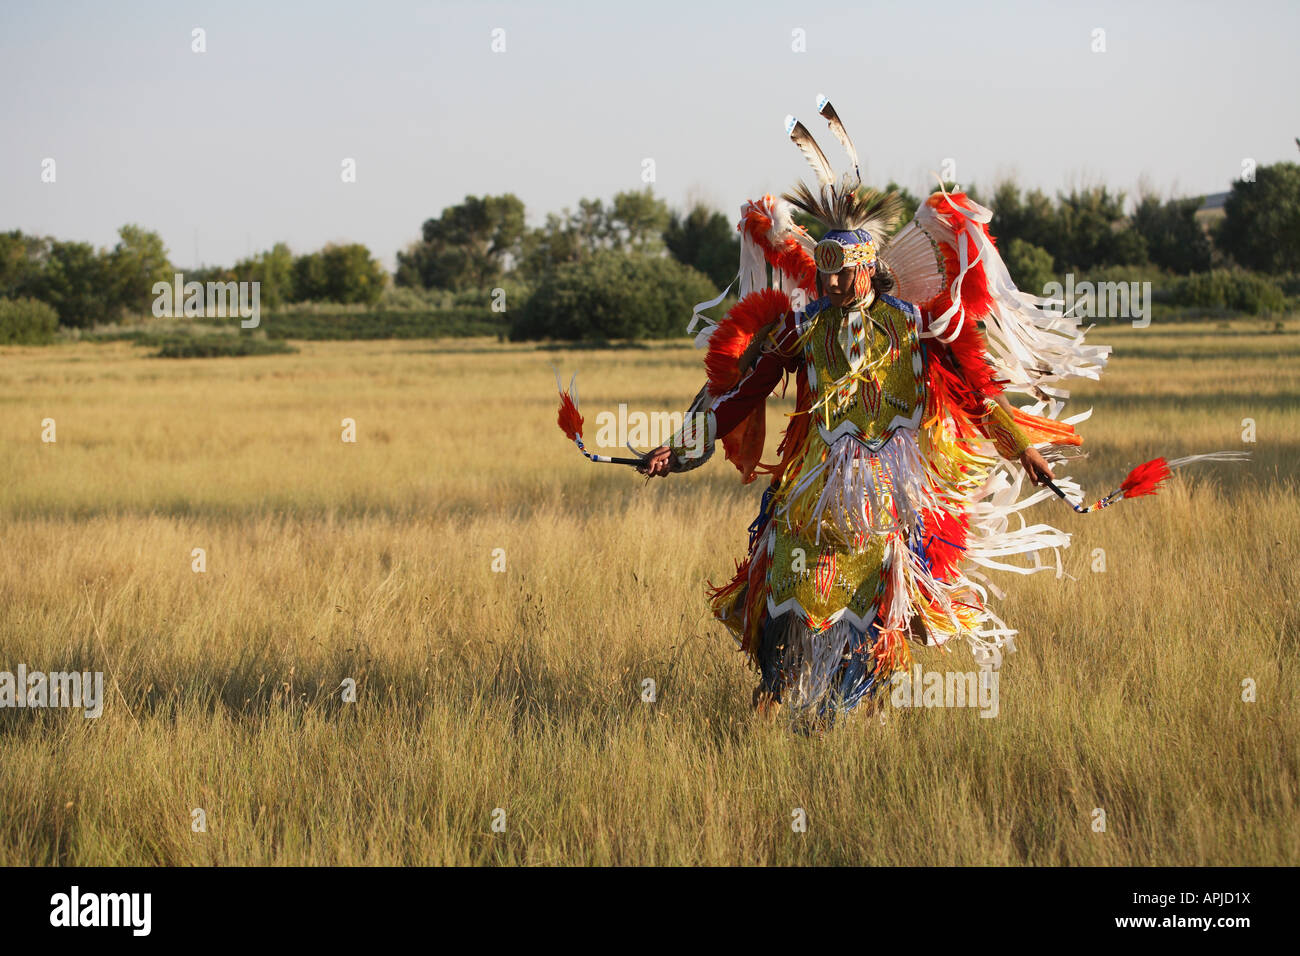 First Nations Plains Indian dancer doing traditional native dances - Stock Image